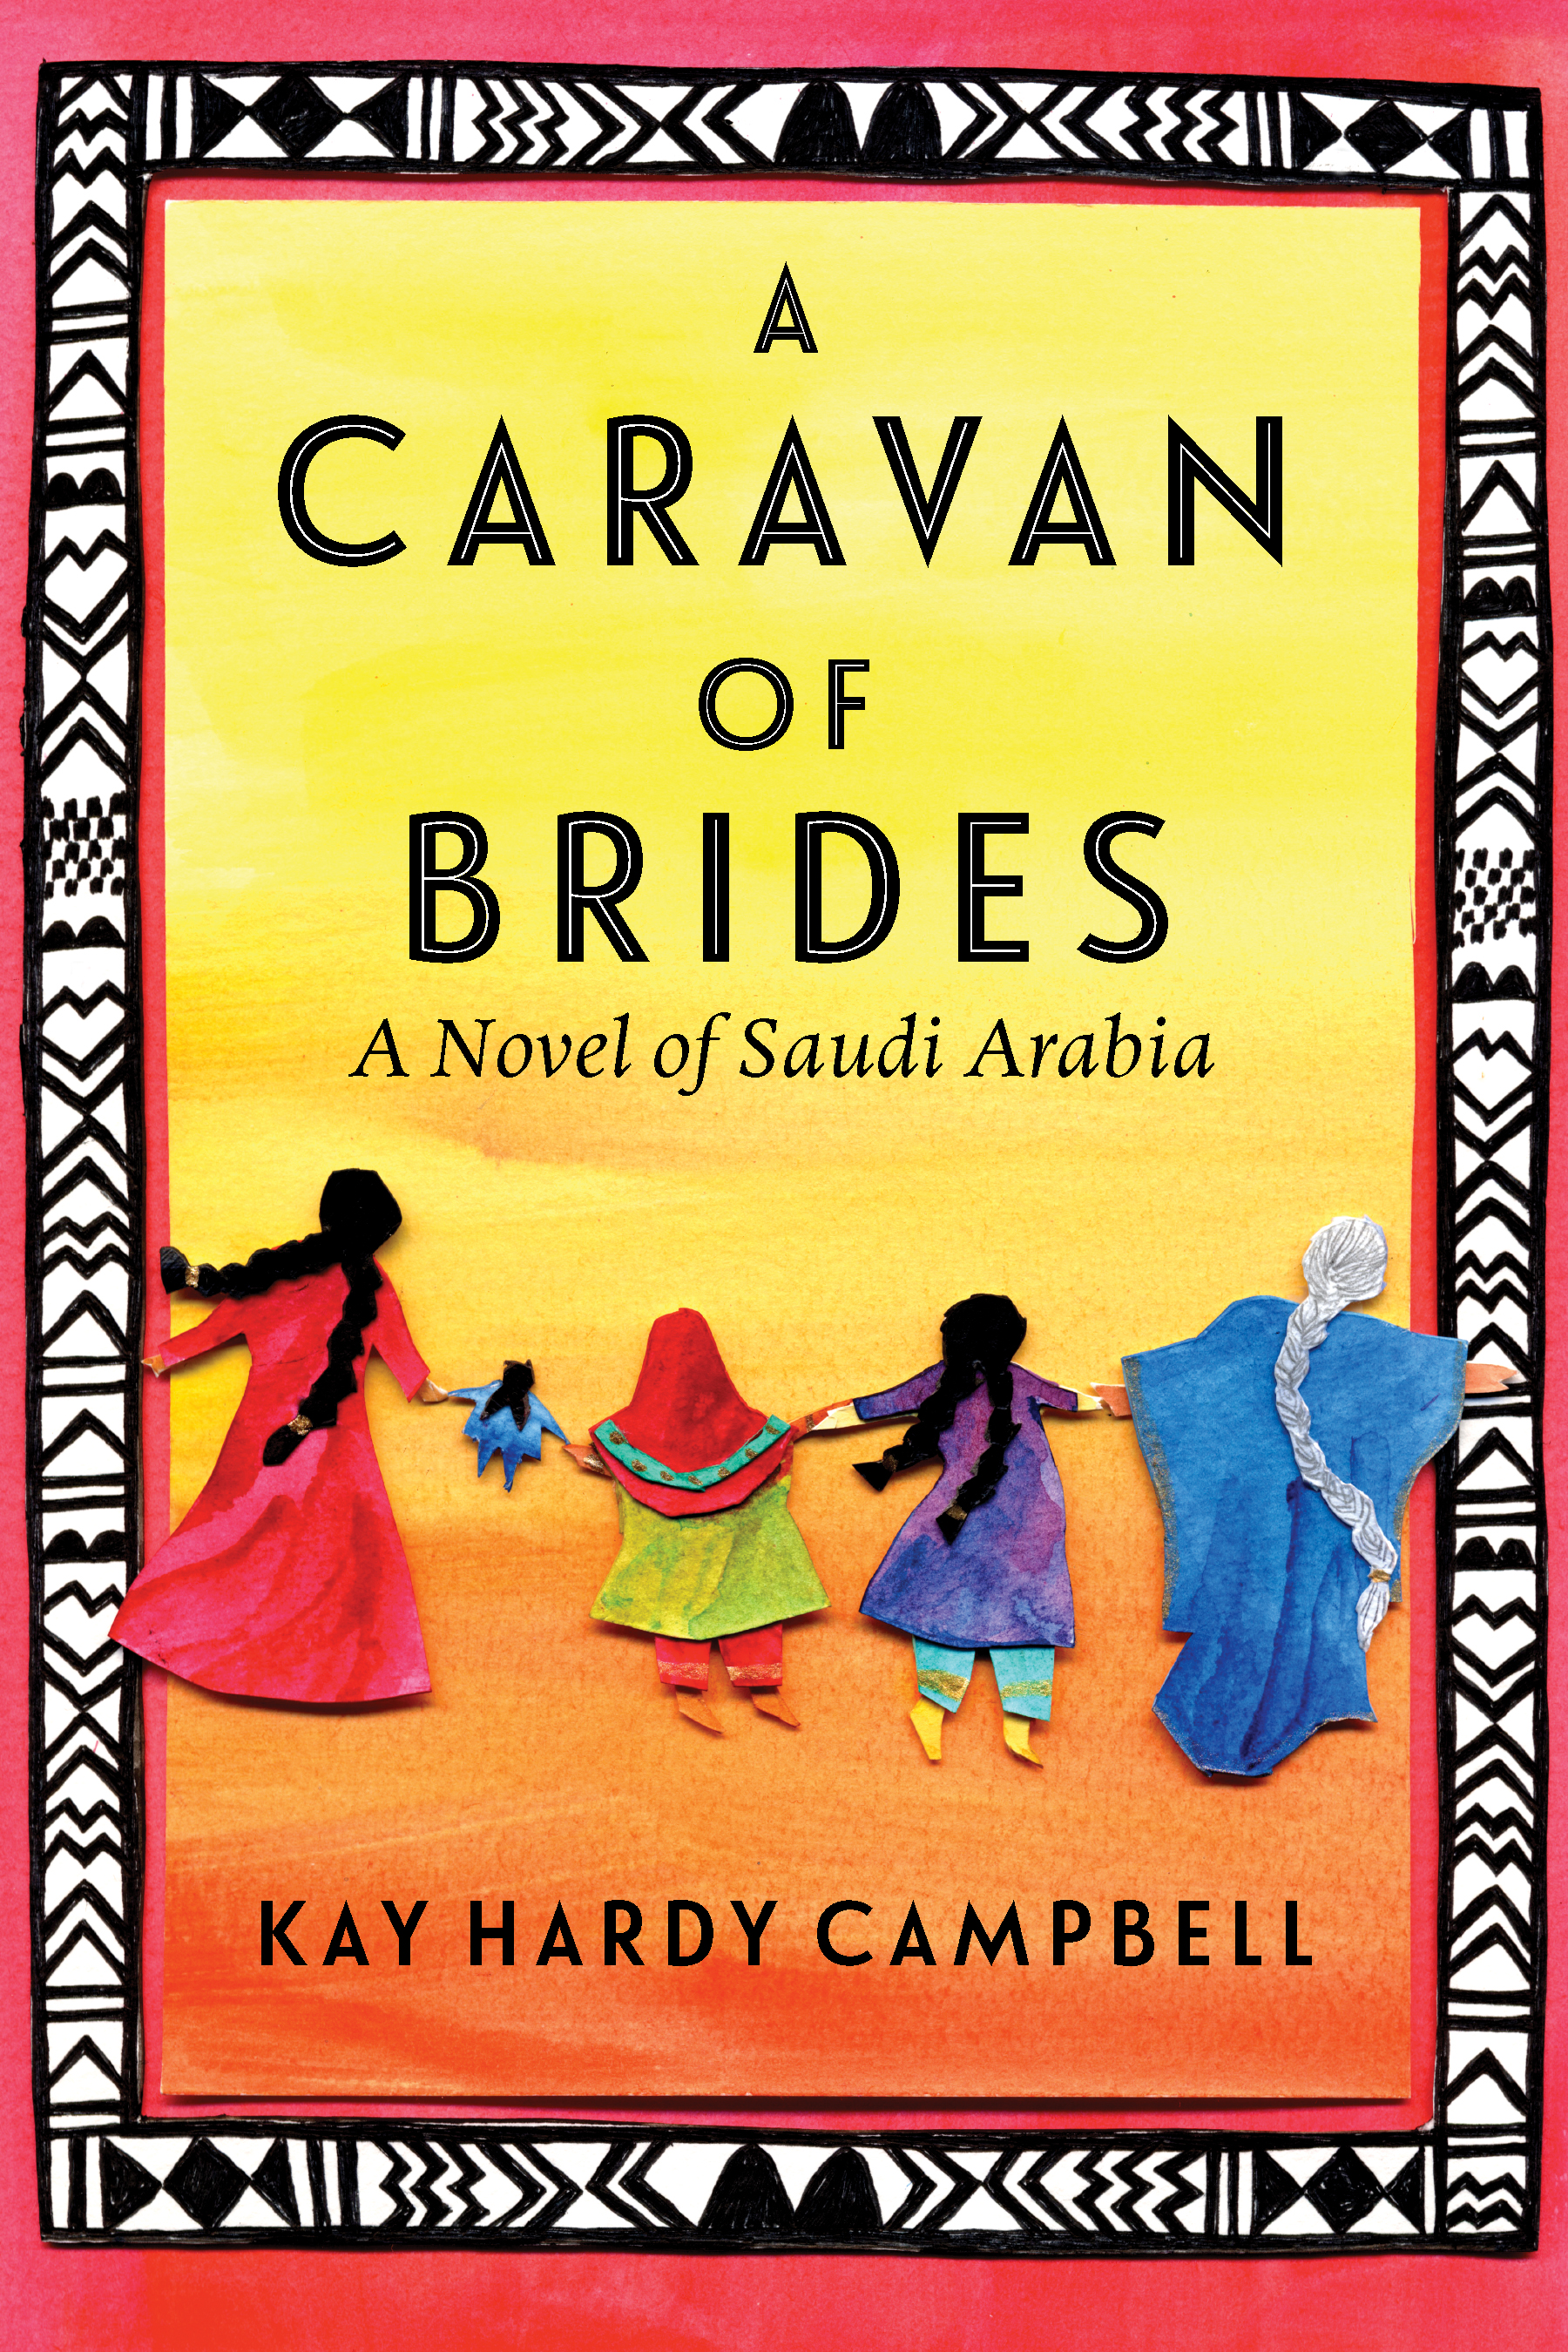 Book cover illustration for A Caravan of Brides